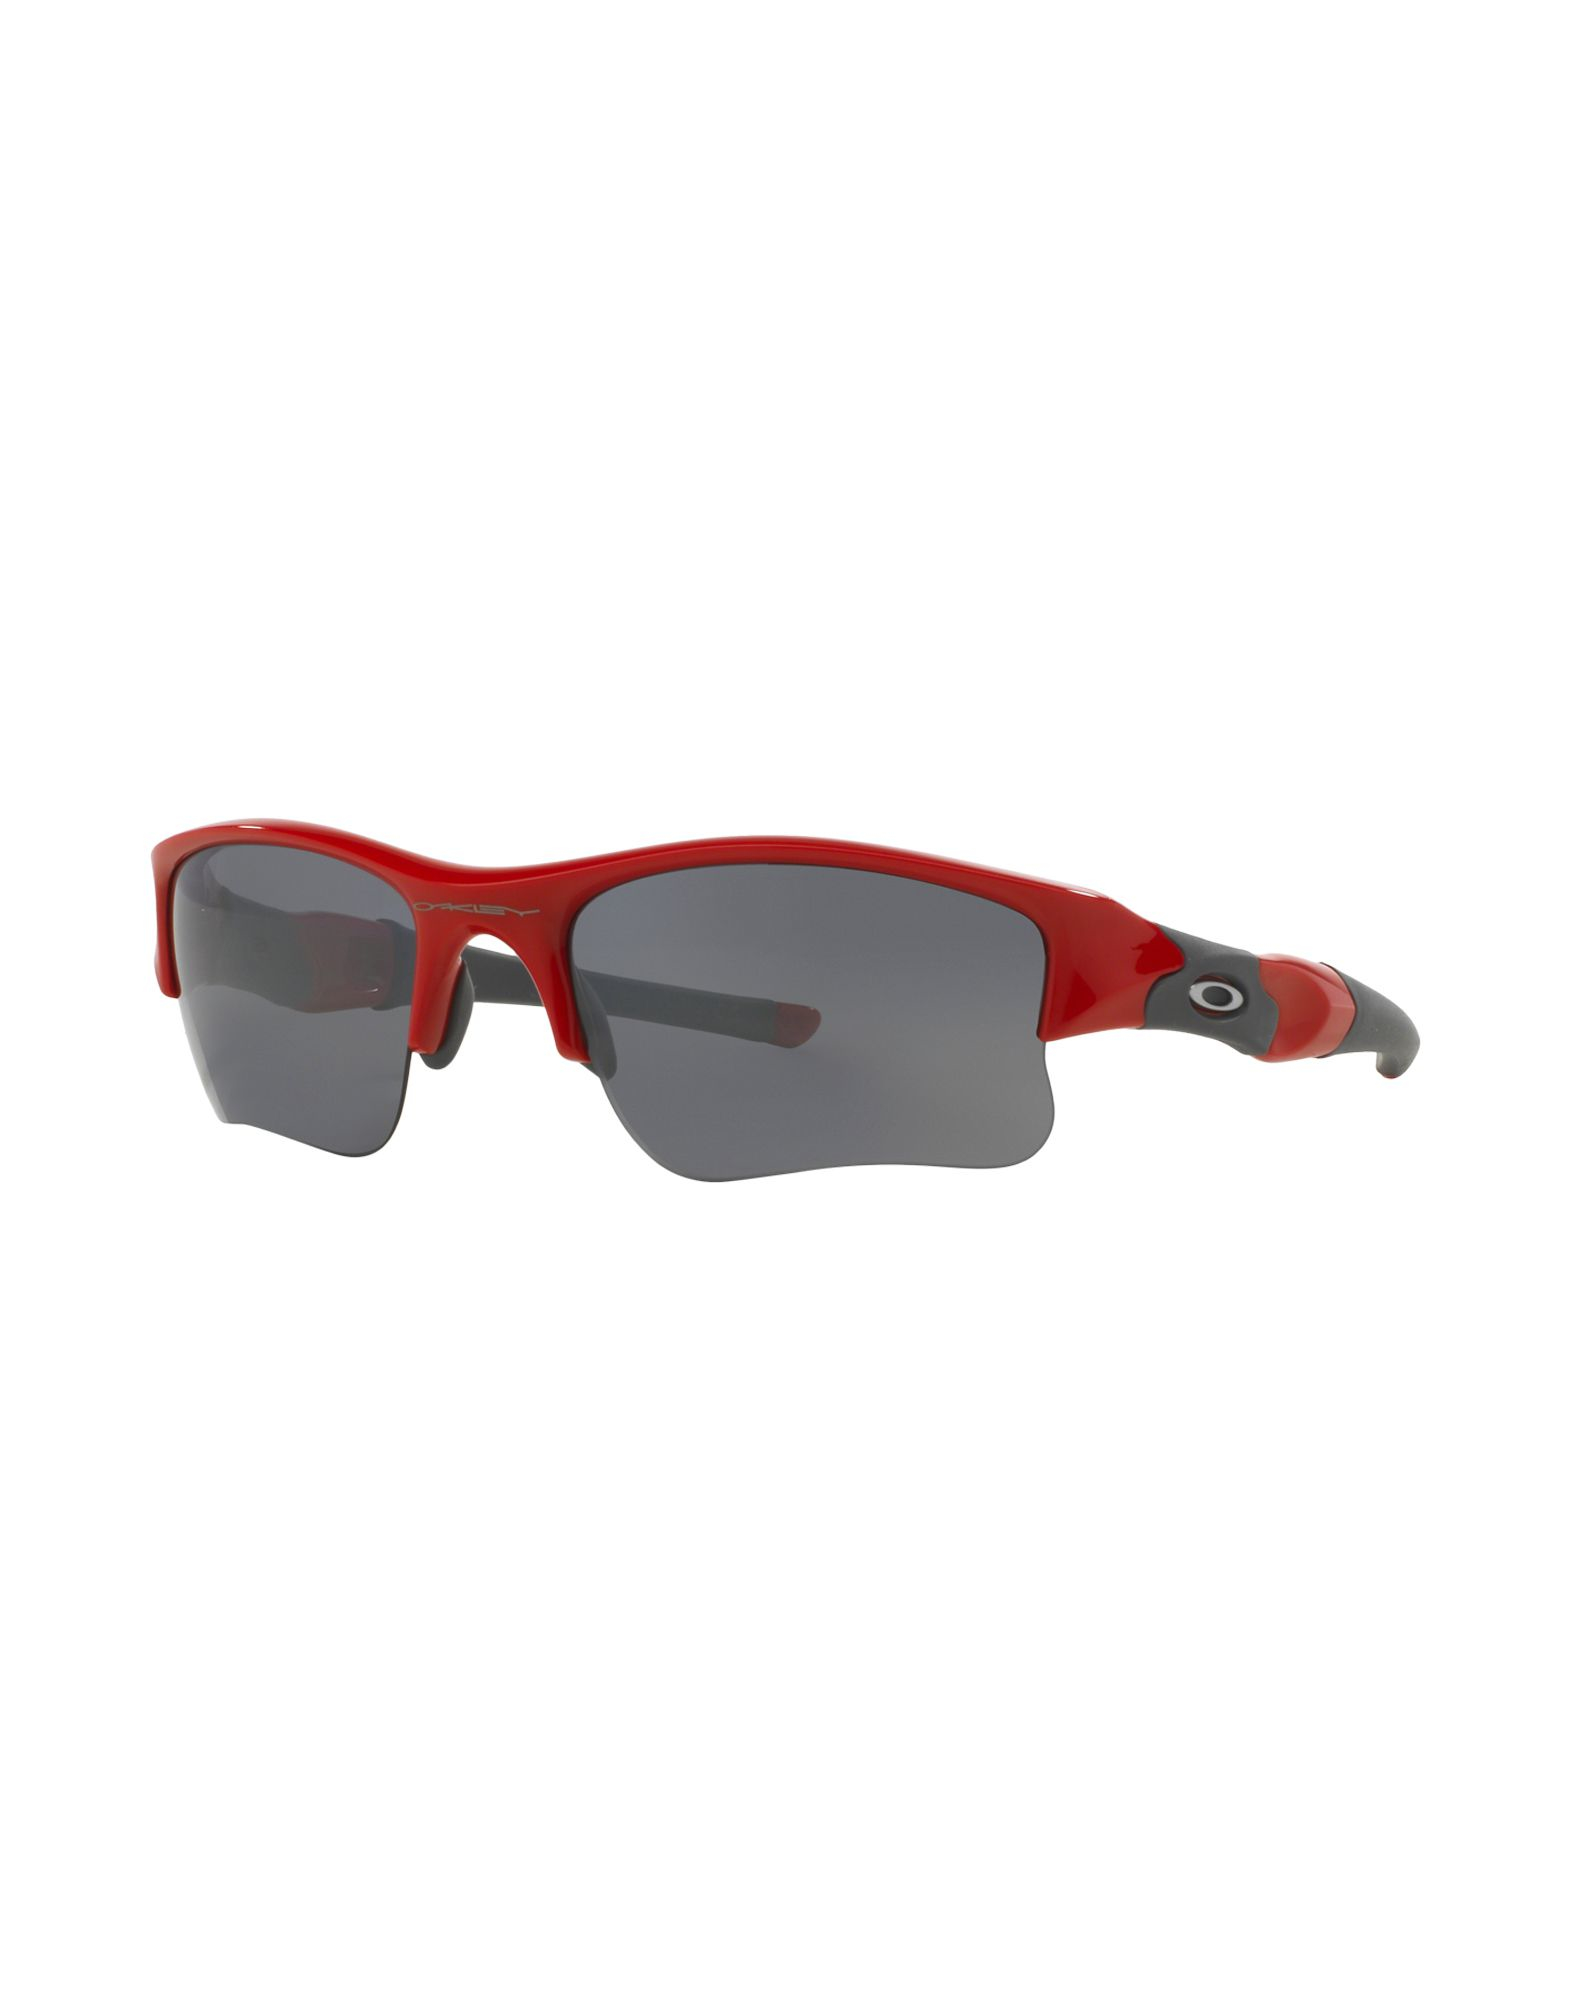 b880b3add5 Mens Red Oakley Sunglasses « Heritage Malta